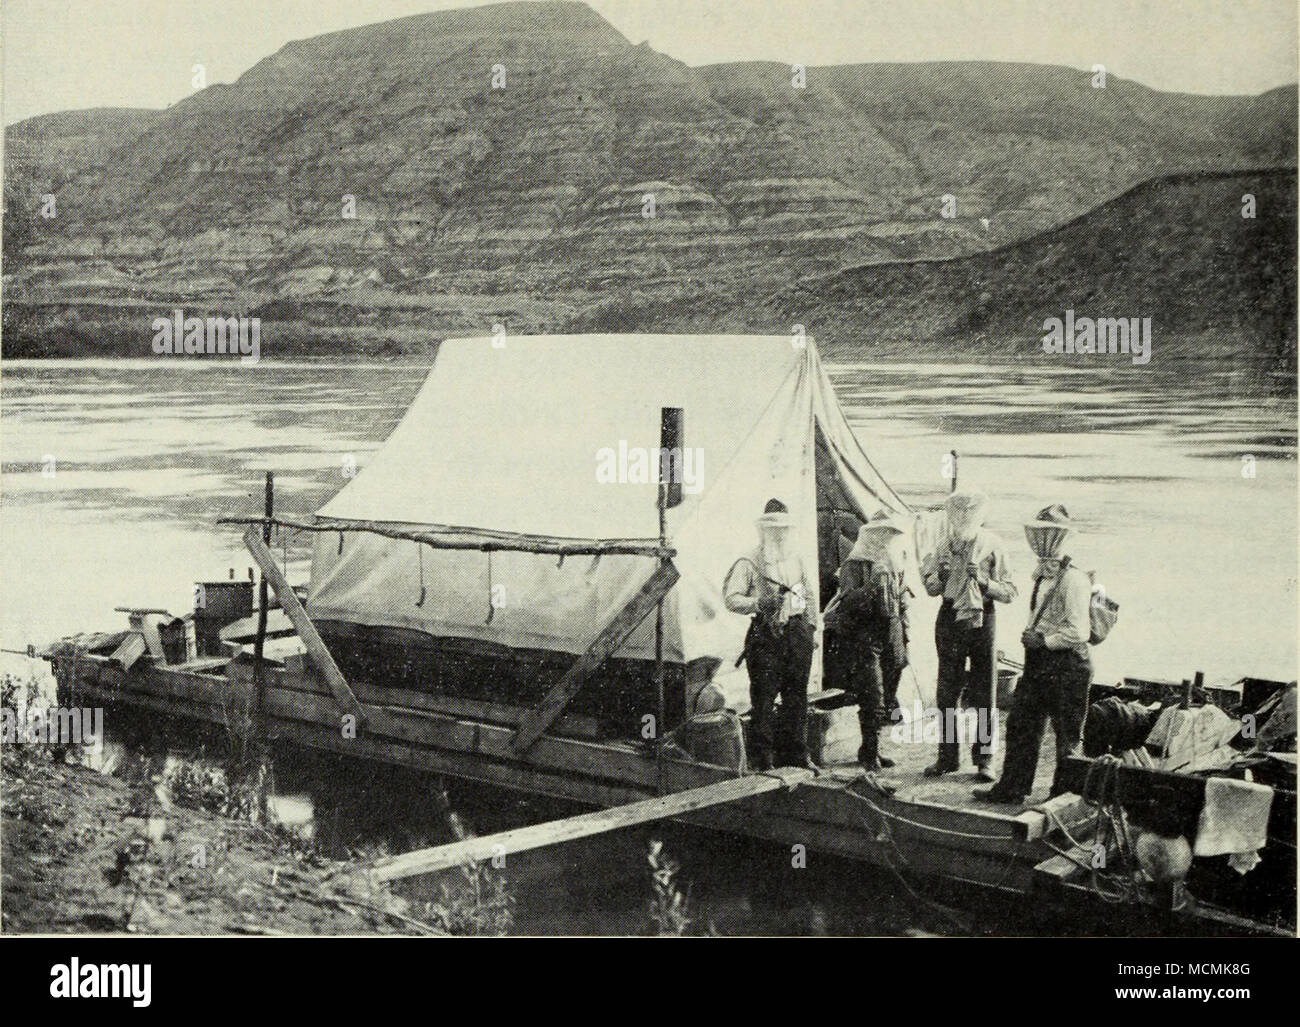 . Expedition from the American Museum of Natural History under Dr. Barnum Brown, in the Edmonton badlands of the Red Deer River, 1912. The fossil hunters wear nets for protection against mosquitoes. A.M.N.H., No. 18547. Soon the scow was floating between badland exposures of the Edmonton formation. Brown, used to the extensive badlands of South Dakota and Montana, thought of the vaHey as a canyon. Before the short season ended the scow was piled with specimens wrapped in the plaster and burlap casings, the first from Canada to be collected in this manner. In 1911 Brown continued his prospectin - Stock Image